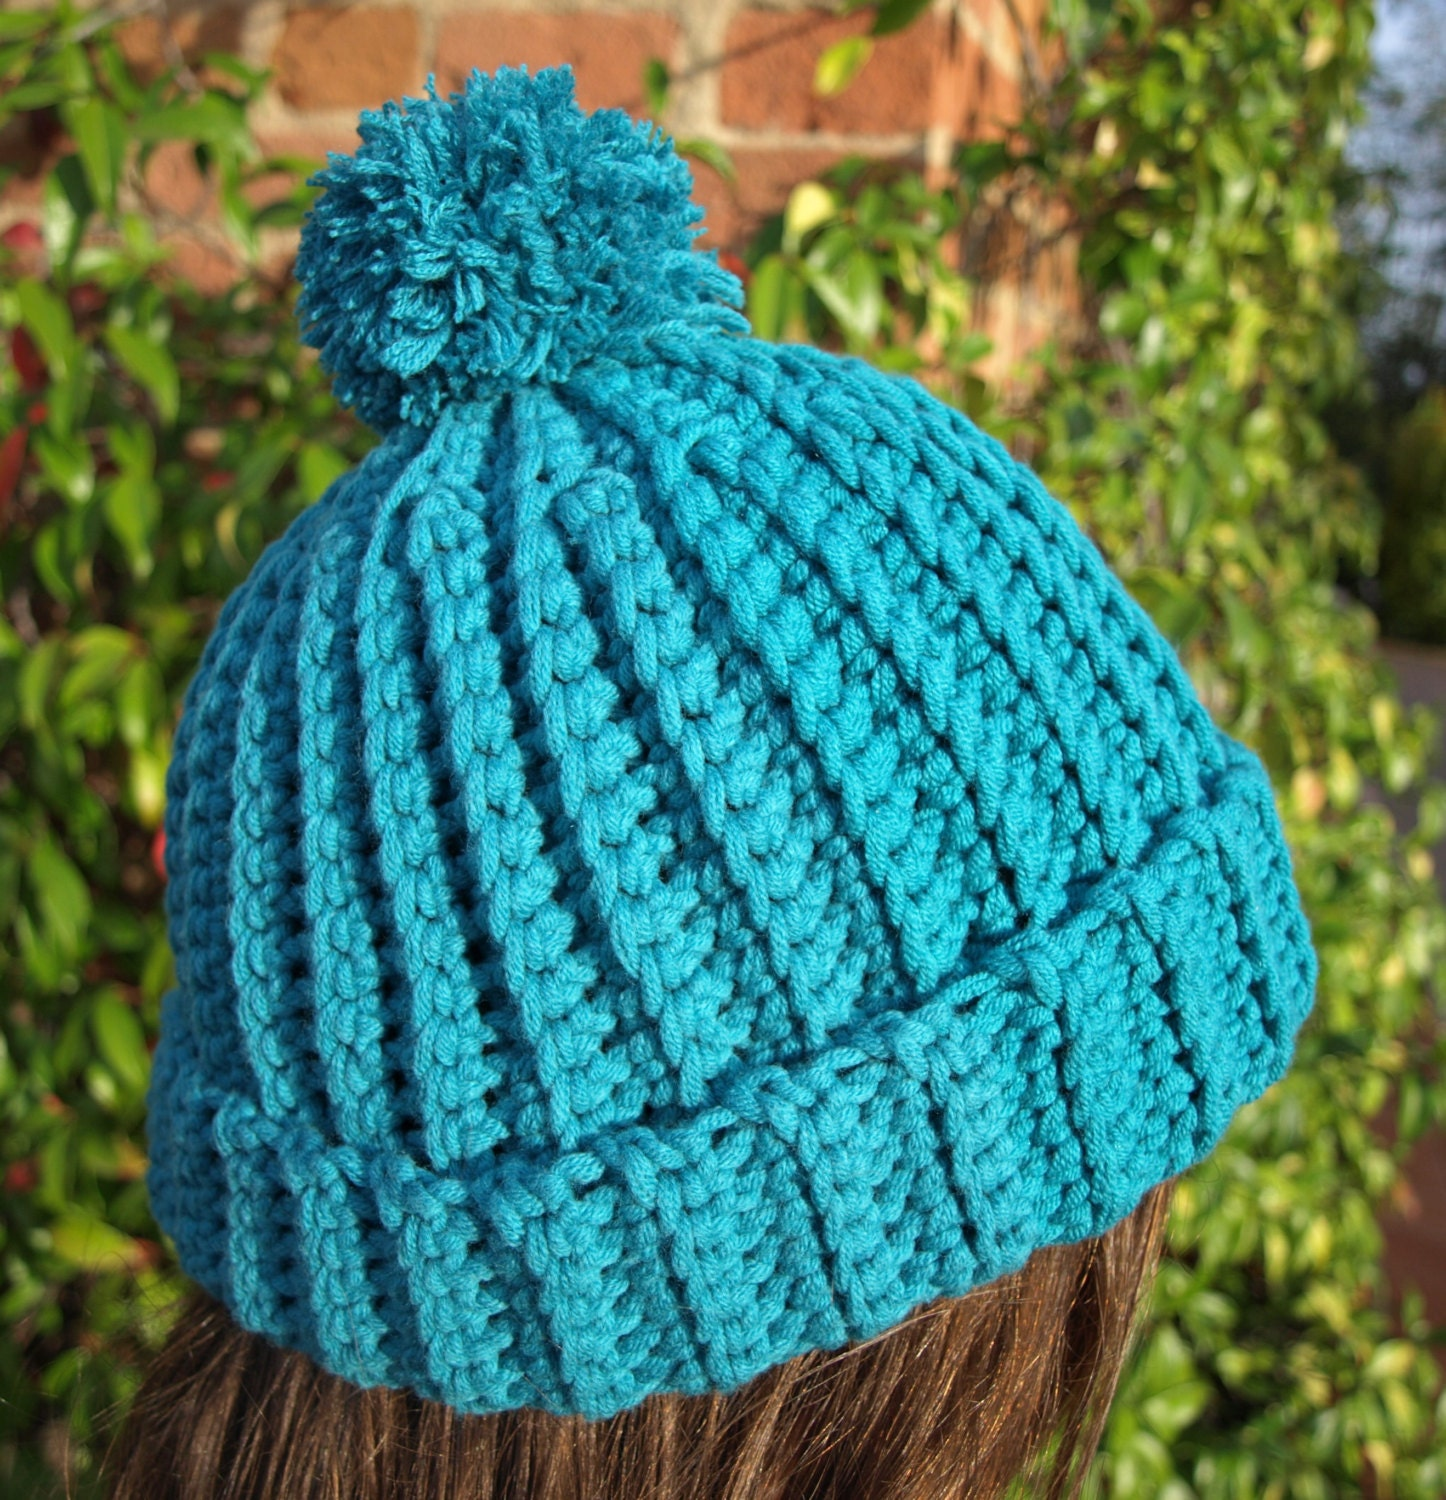 Crochet Hat Patterns Beanie : Crochet Beanie PATTERN Crochet hat pattern Easy by berrykidz